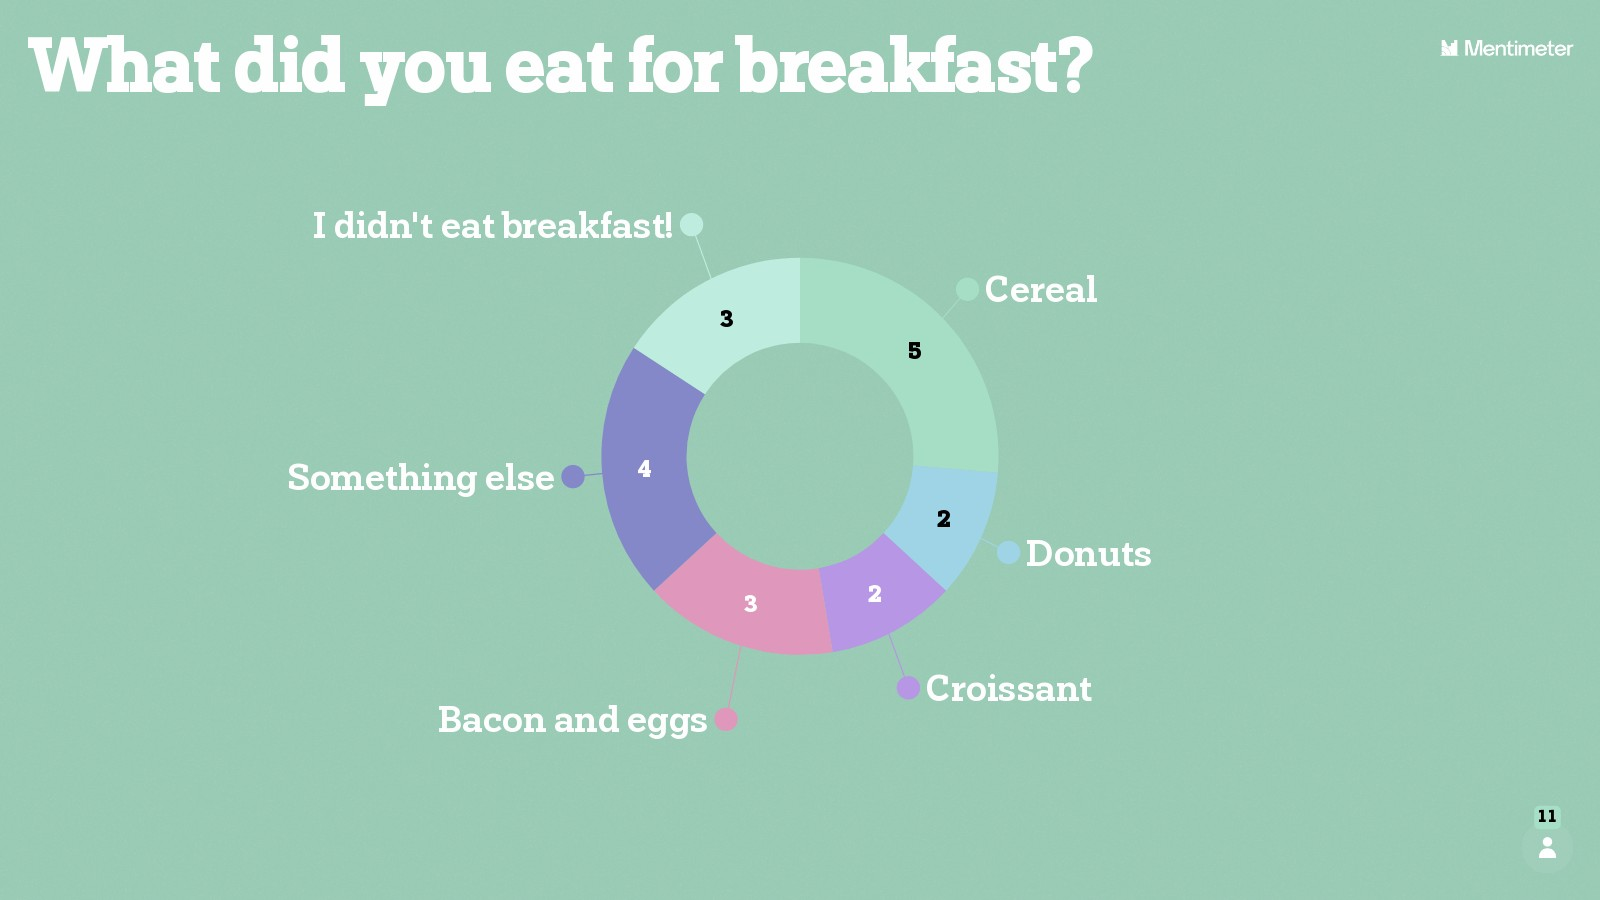 Icebreaker - What did you eat for breakfast?